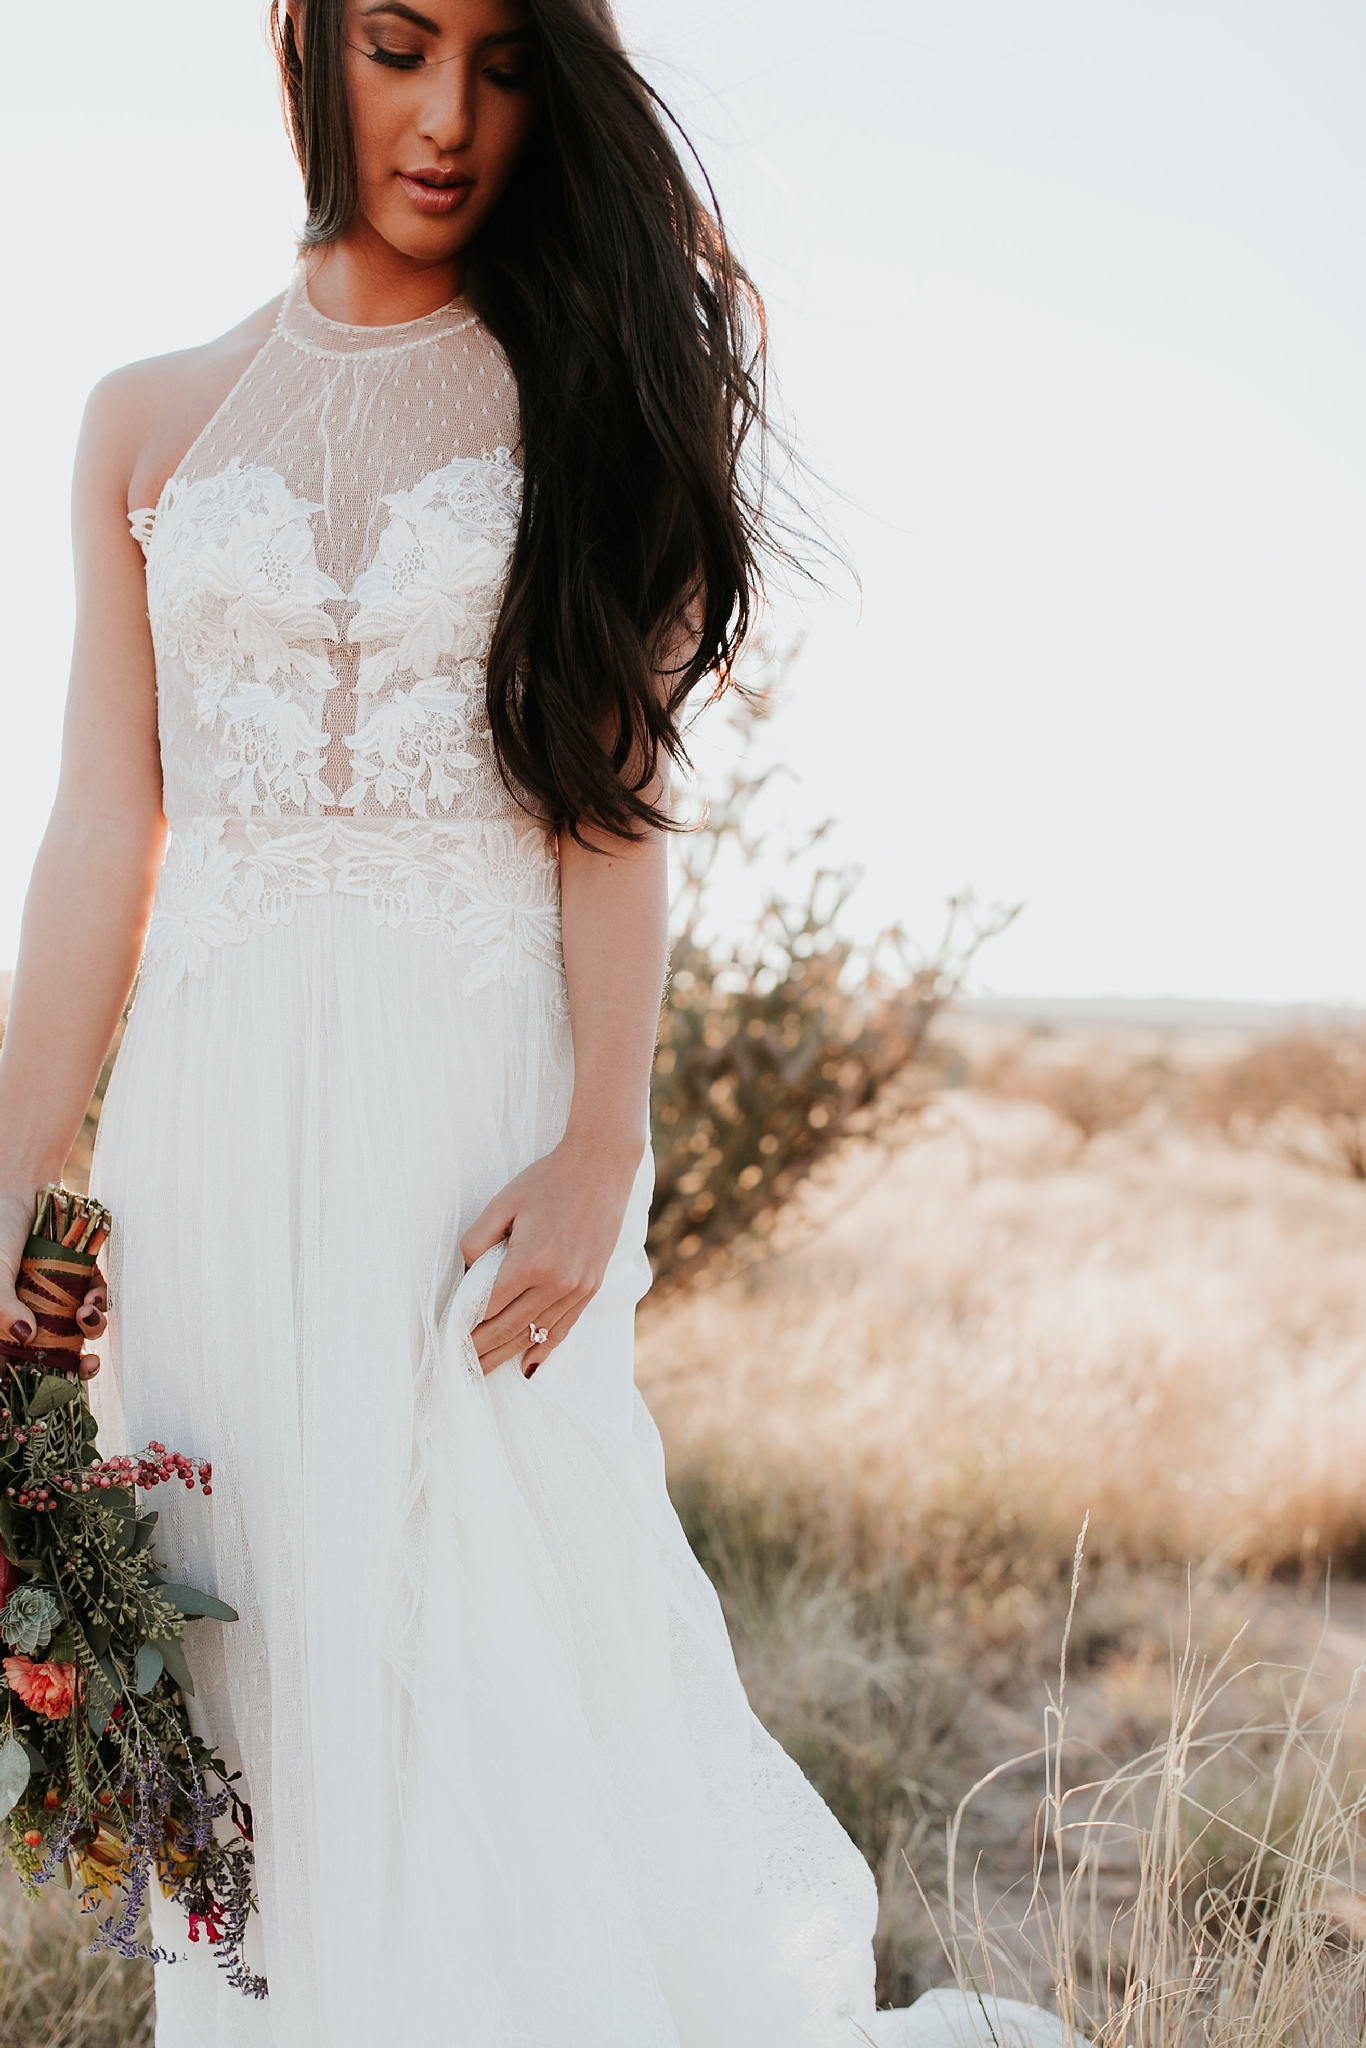 Alicia+lucia+photography+-+albuquerque+wedding+photographer+-+santa+fe+wedding+photography+-+new+mexico+wedding+photographer+-+new+mexico+wedding+-+wedding+gowns+-+bridal+gowns+-+a+line+wedding+gown_0059.jpg